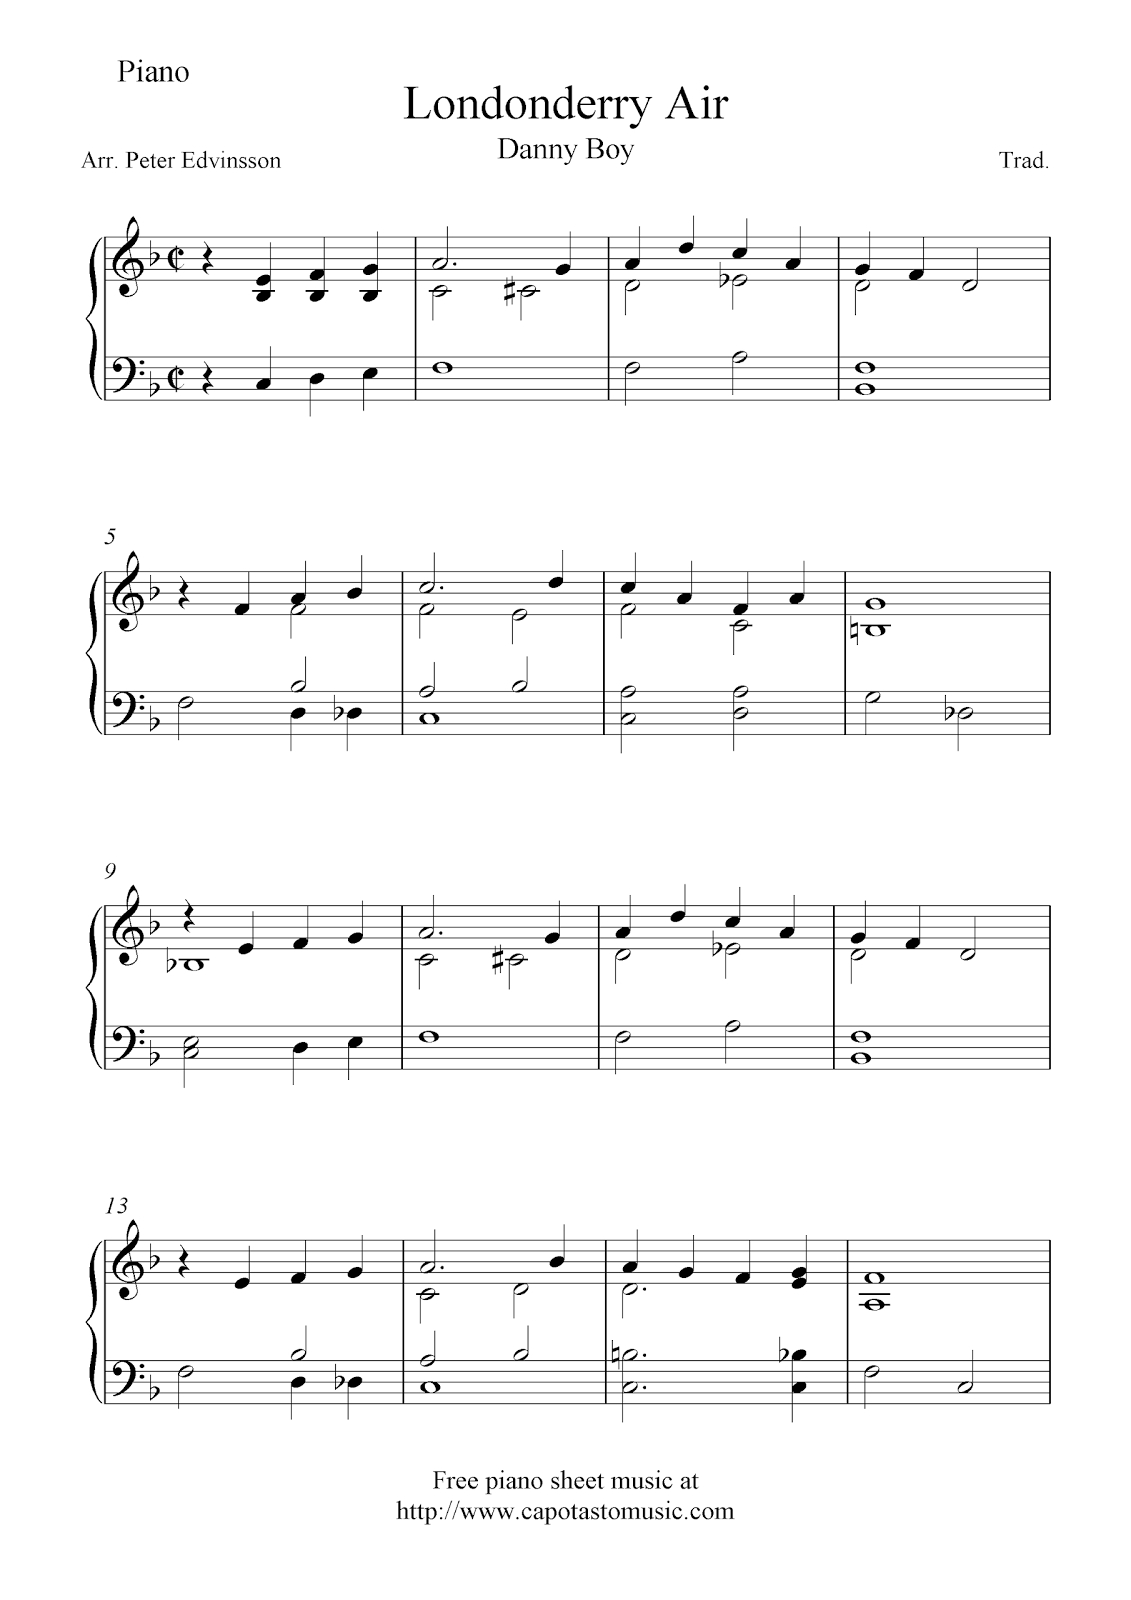 Free Easy Piano Sheet Music Arrangement Of The Melody Danny Boy - Free Printable Piano Pieces